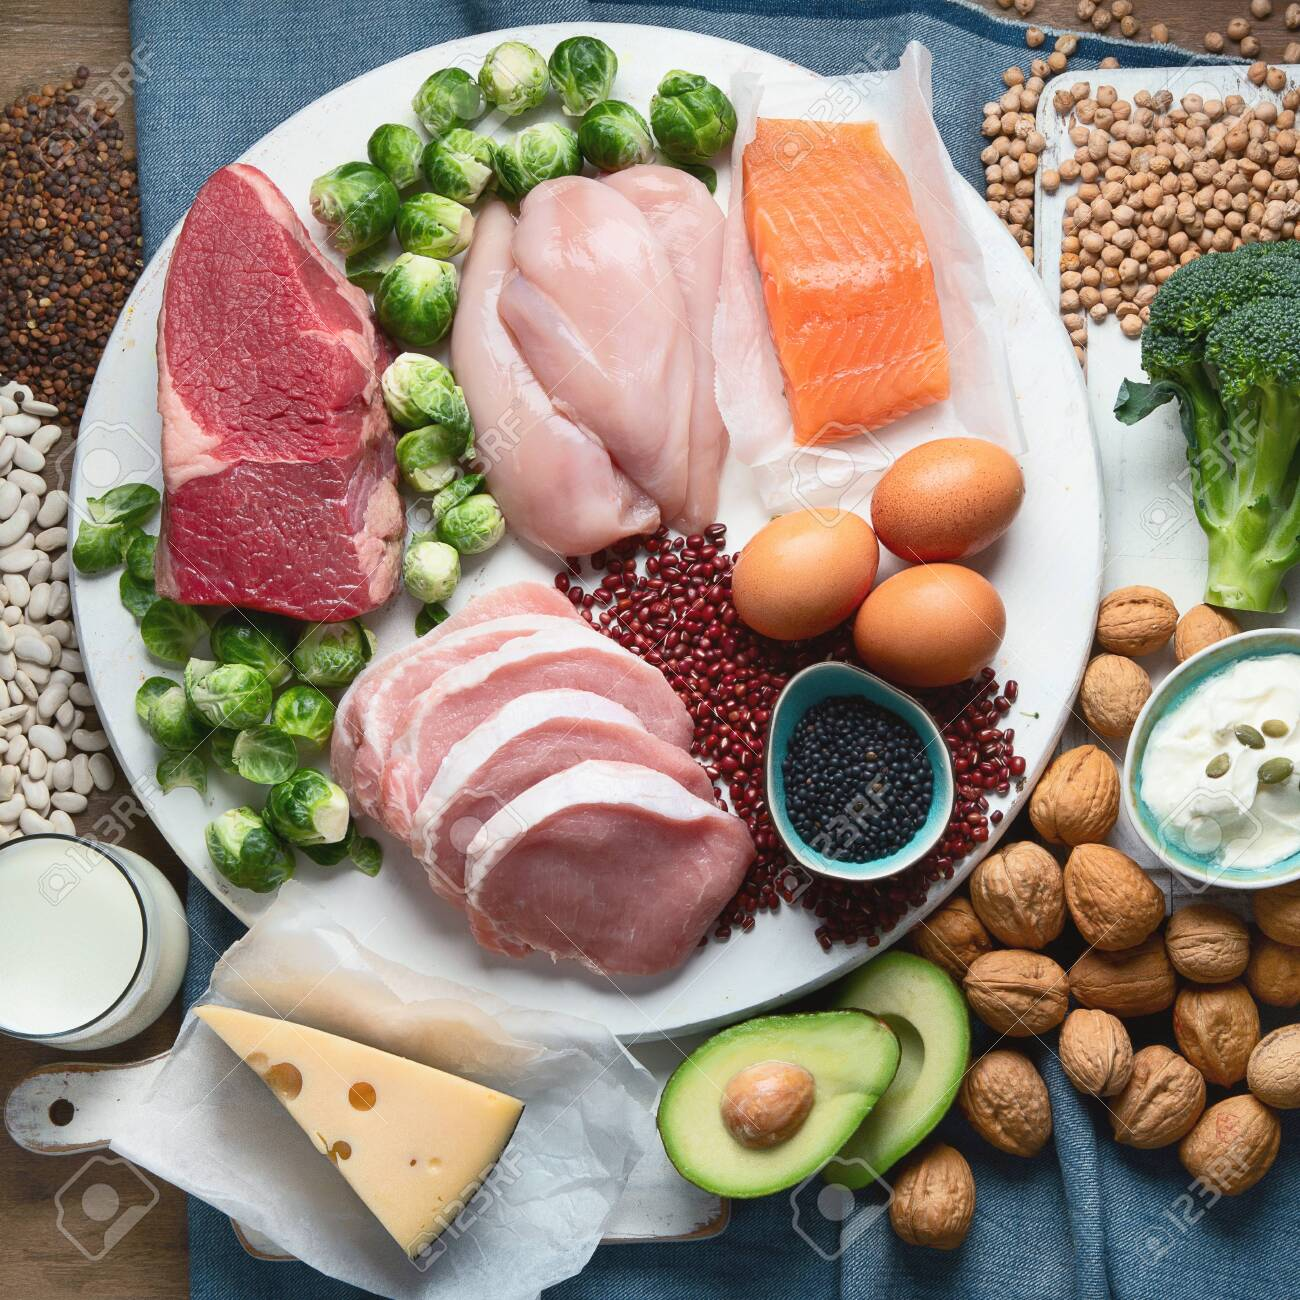 Best High Protein Foods Healthy Eating Concept Health And Body Stock Photo Picture And Royalty Free Image Image 129850236